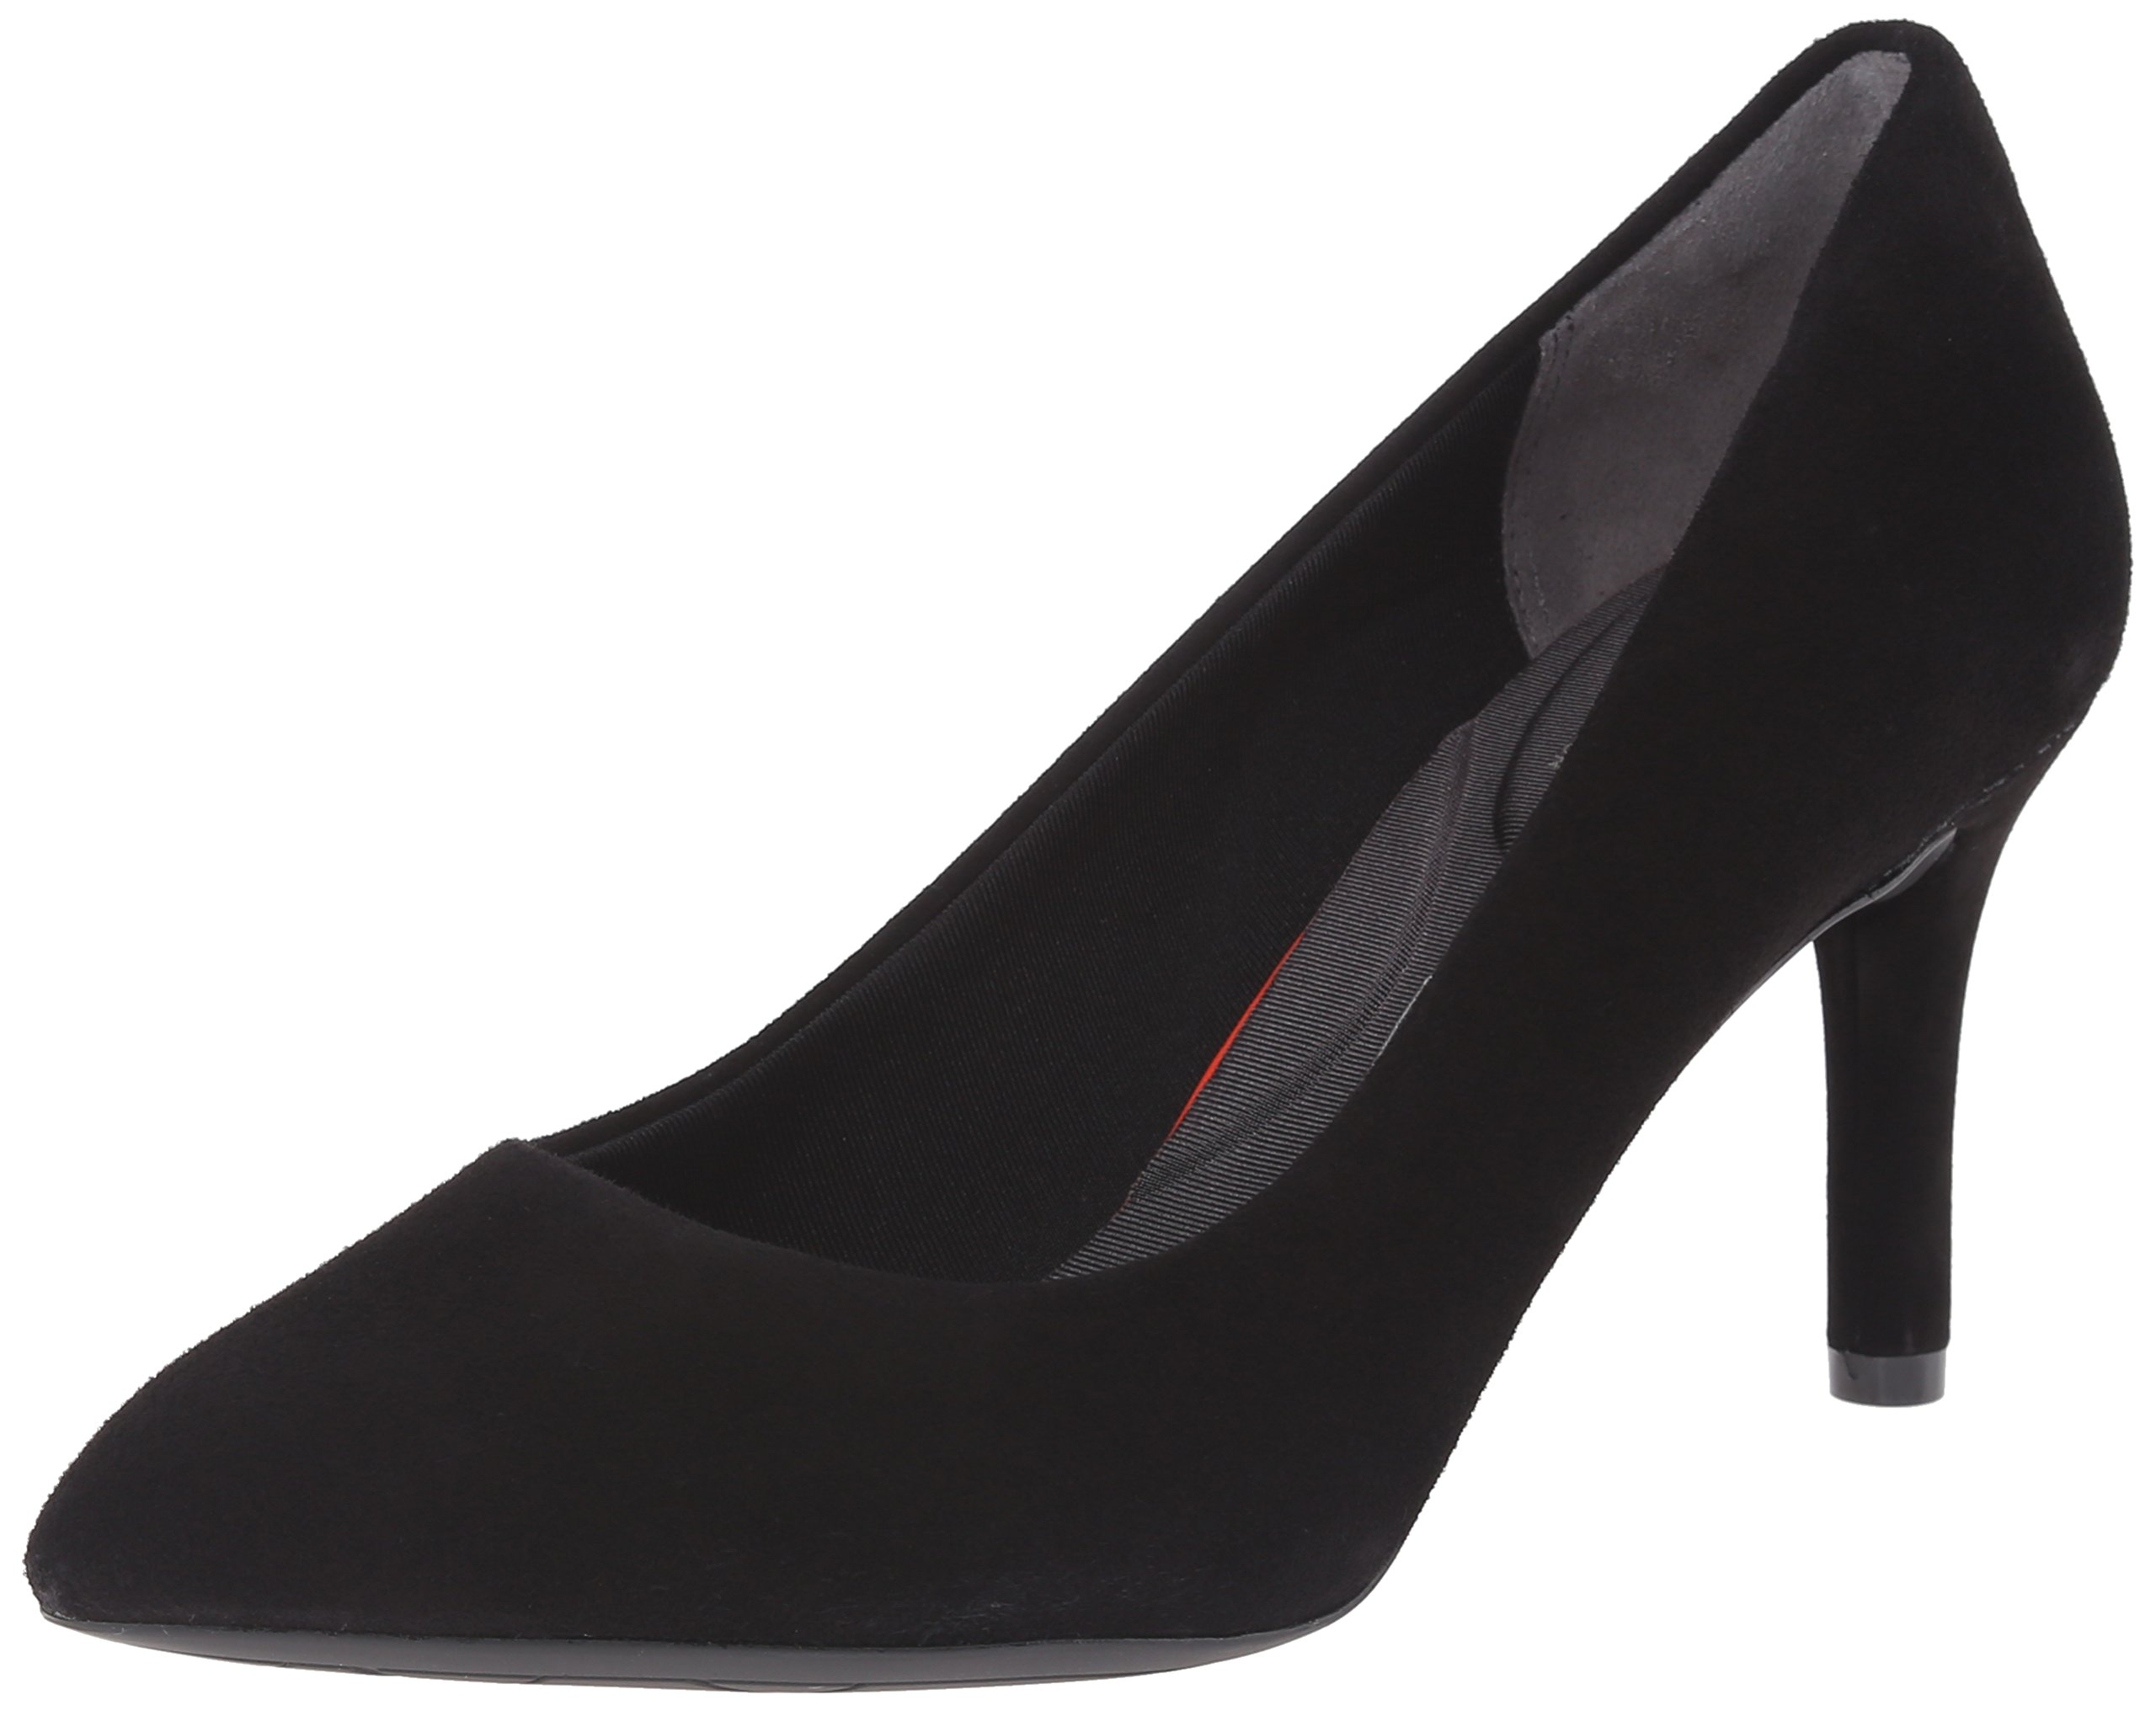 Rockport Women's Total Motion 75mm Pointy Toe Pump Black Kid Suede 8.5 W (C)